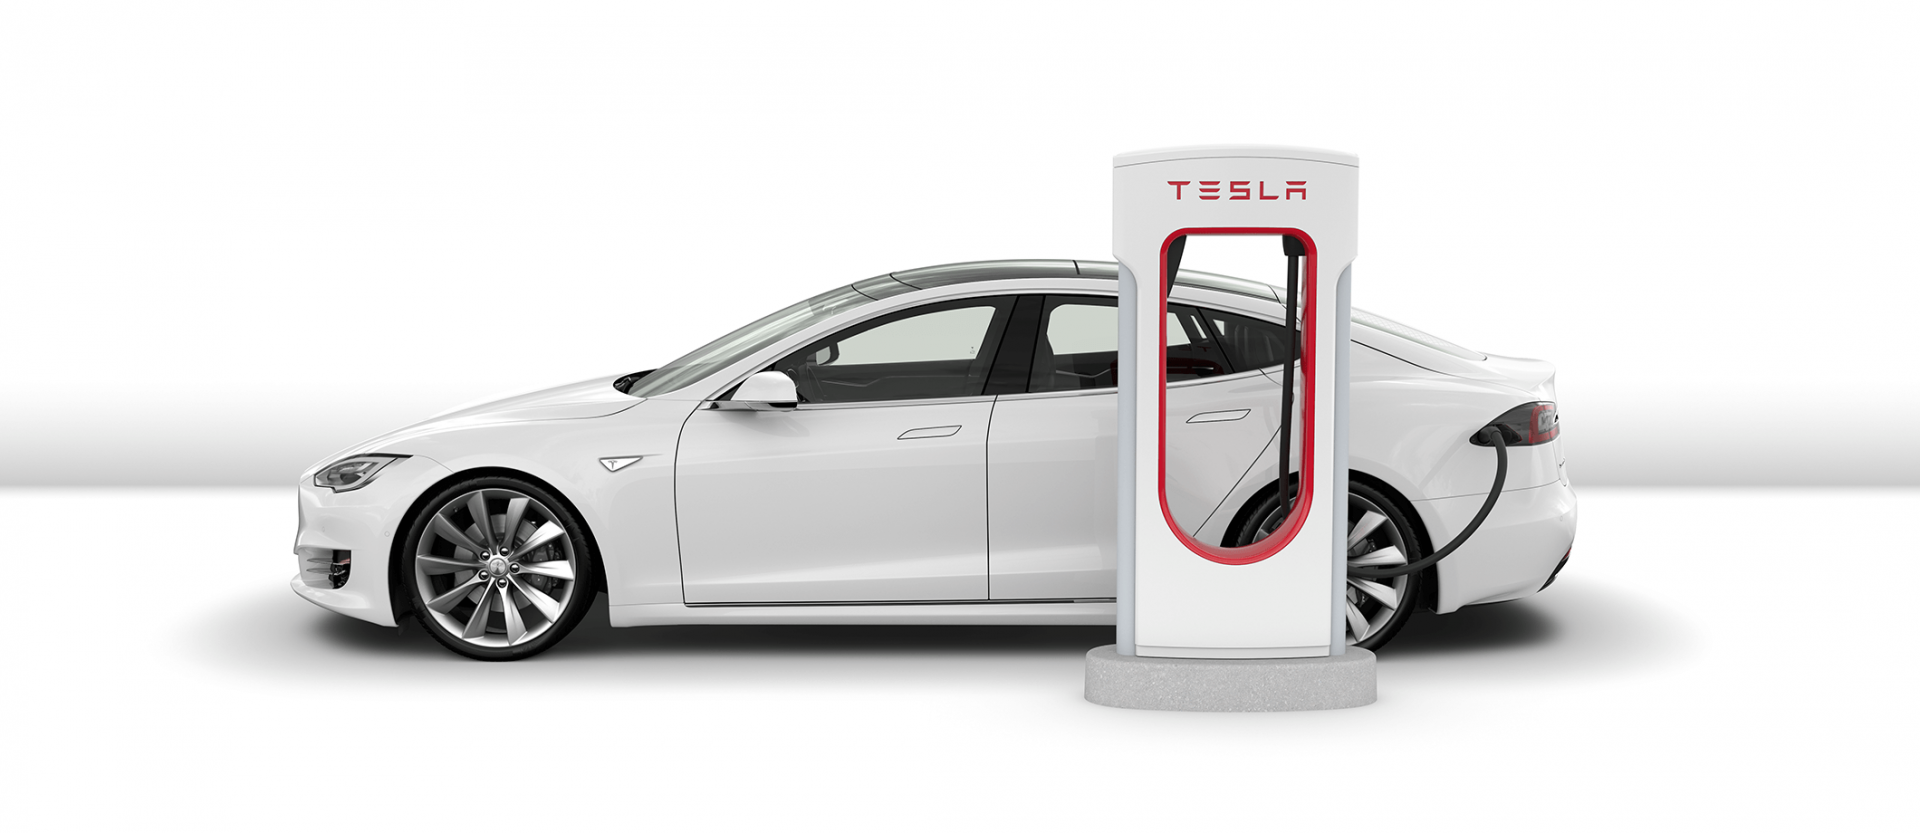 Le colonnine Supercharger di Tesla toccano quota 20.000